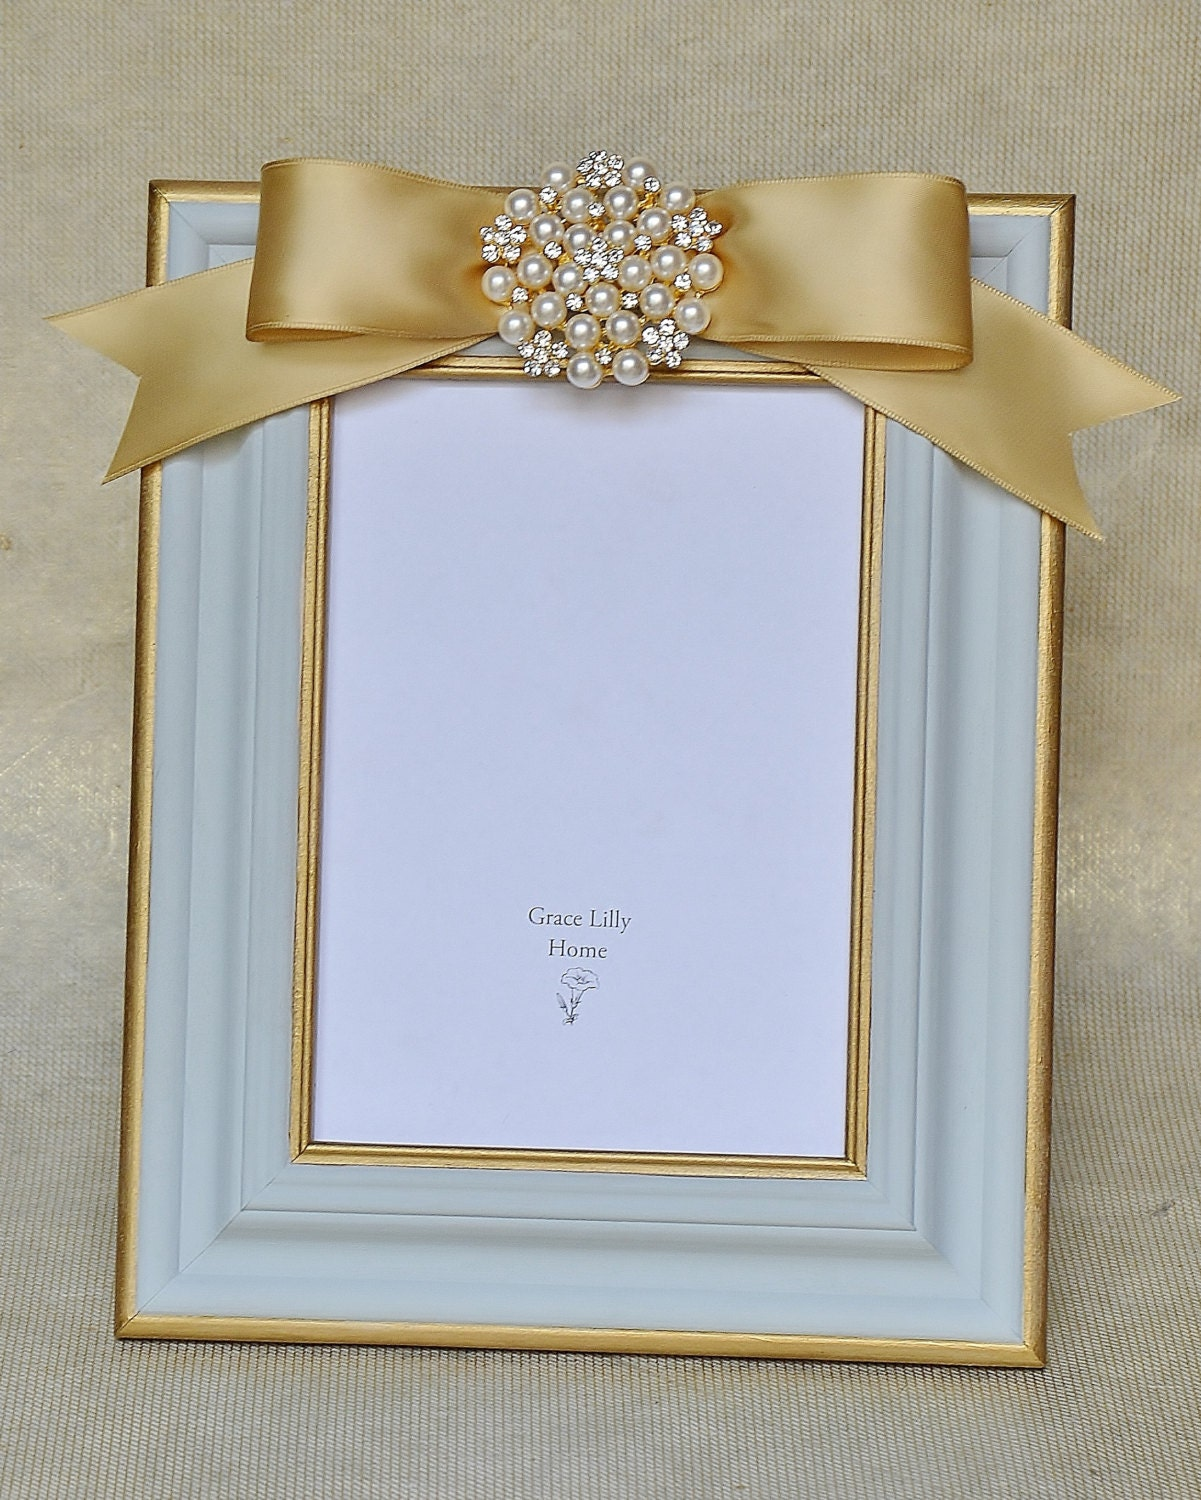 family picture frame gray blue gold pearls choose your size. Black Bedroom Furniture Sets. Home Design Ideas